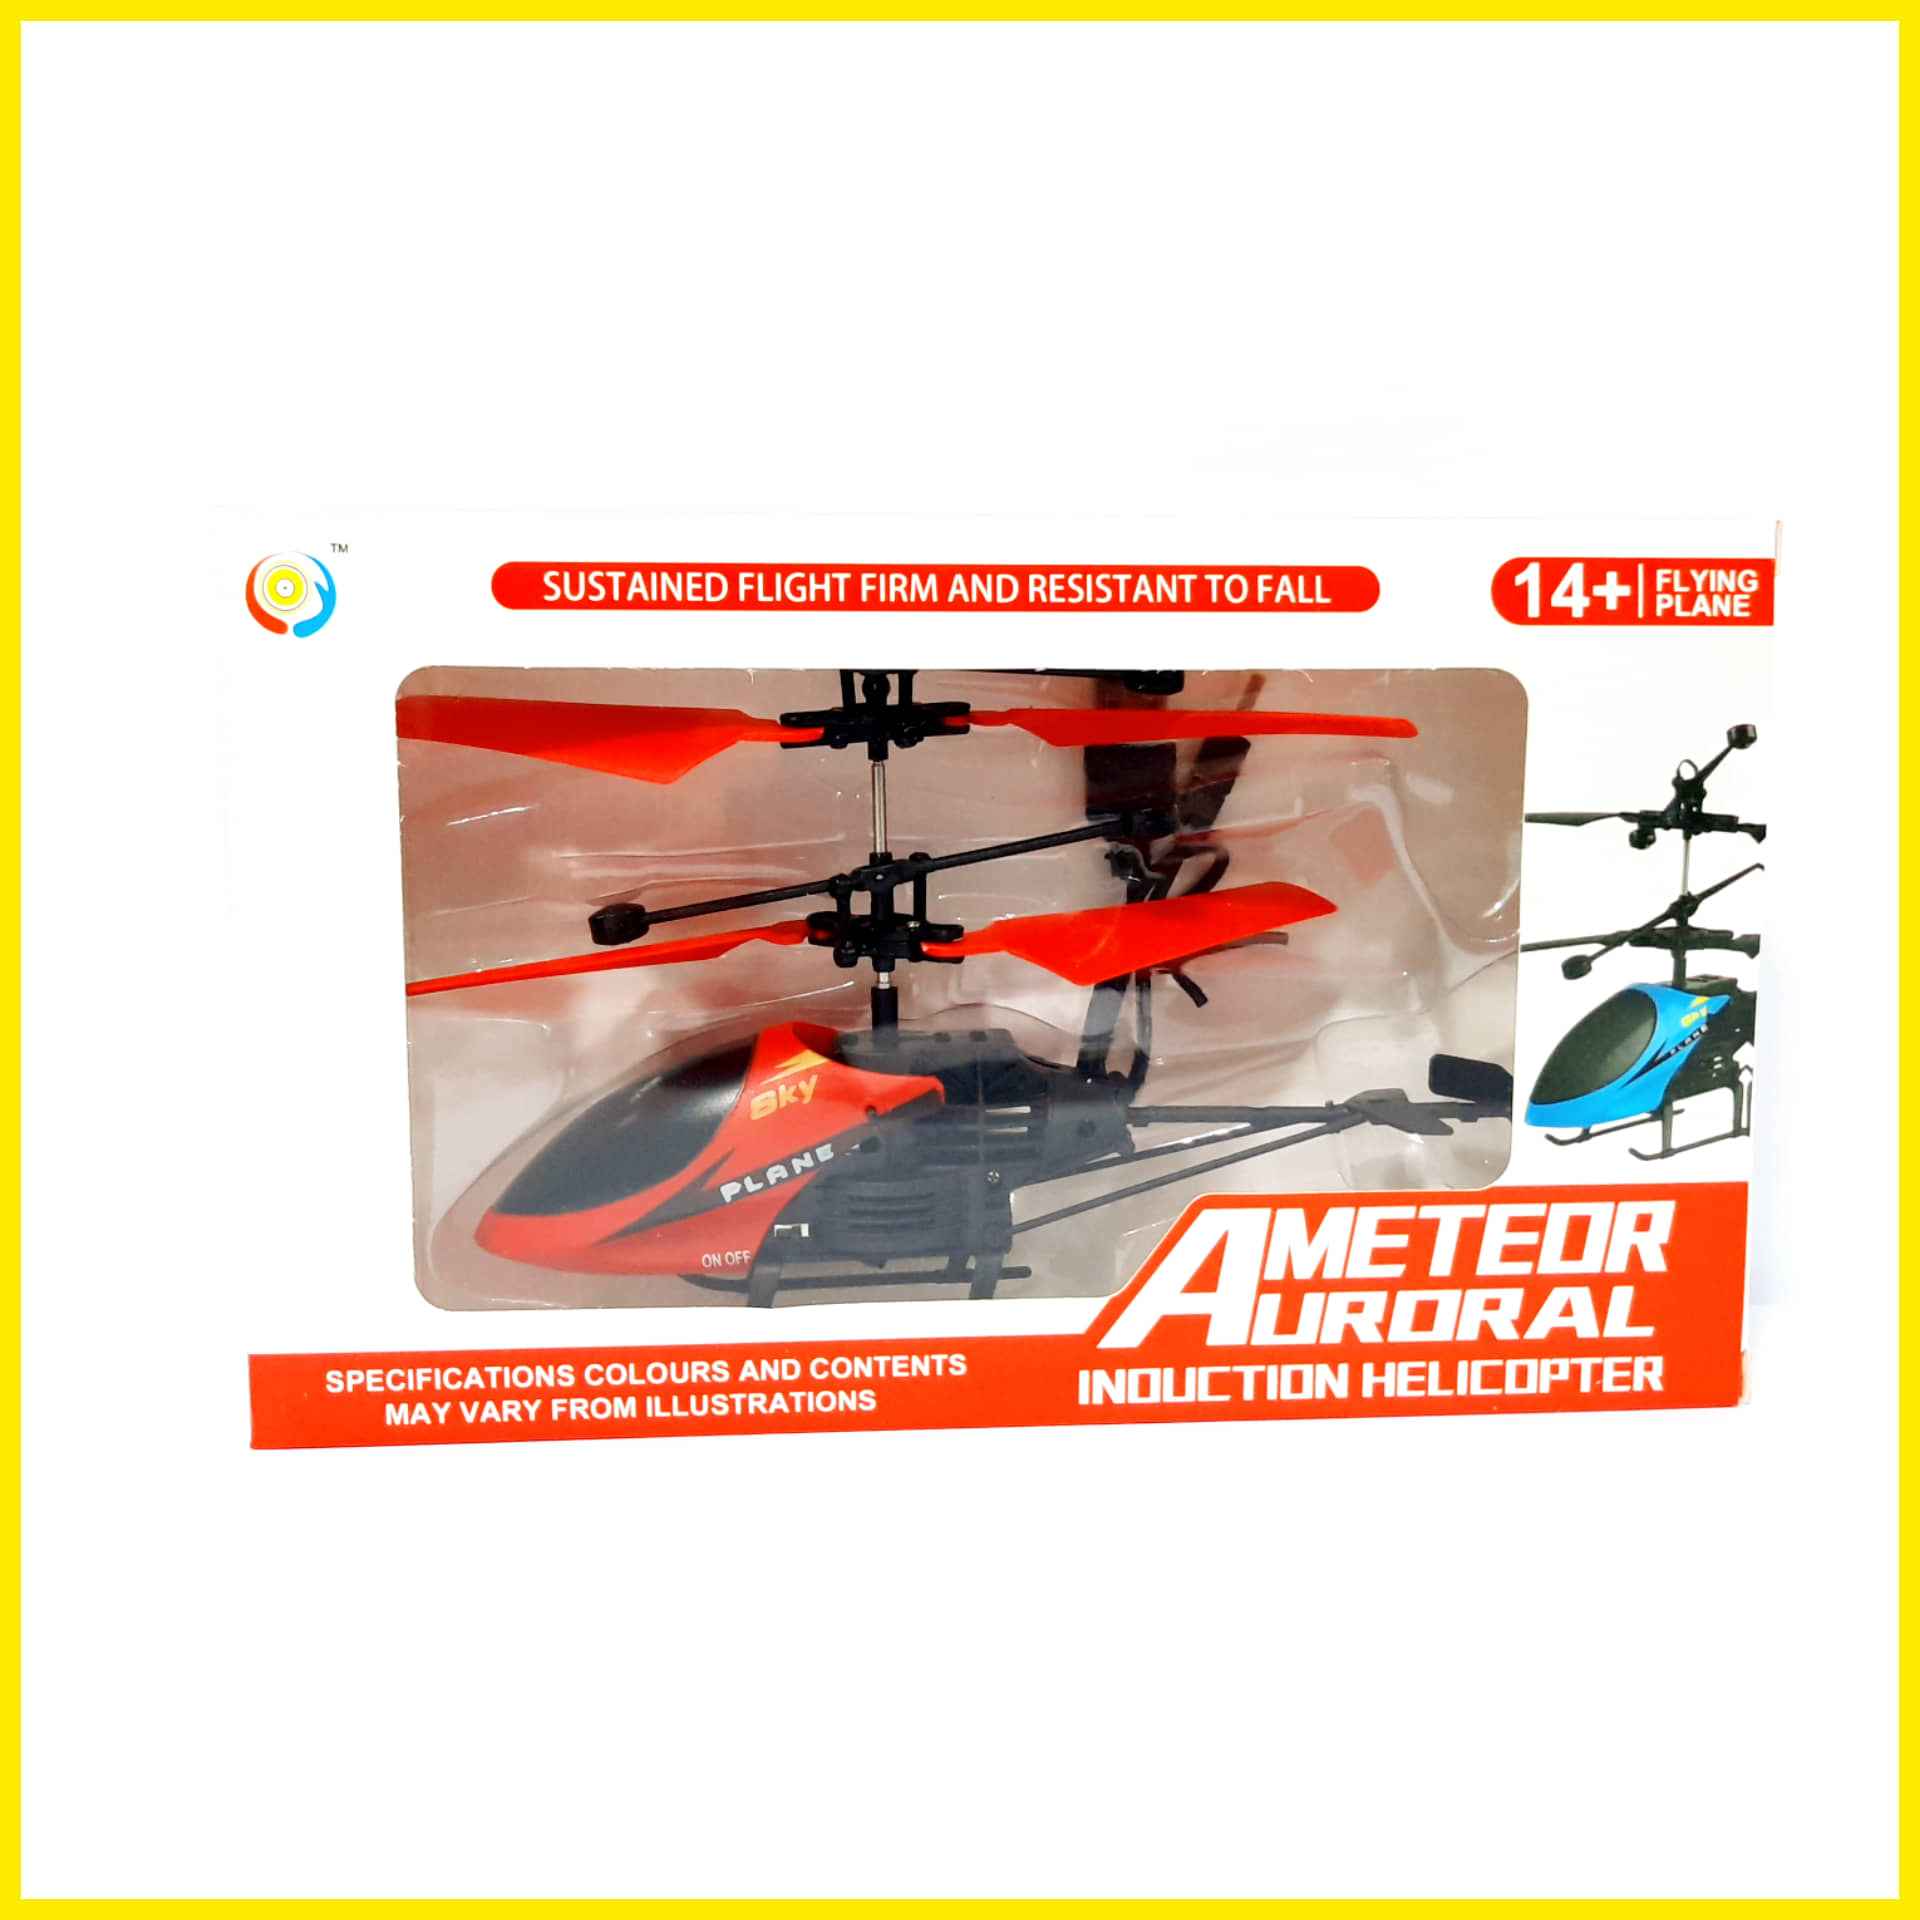 Rechargable Hand Sensor Control Flying Helicopter For Kids